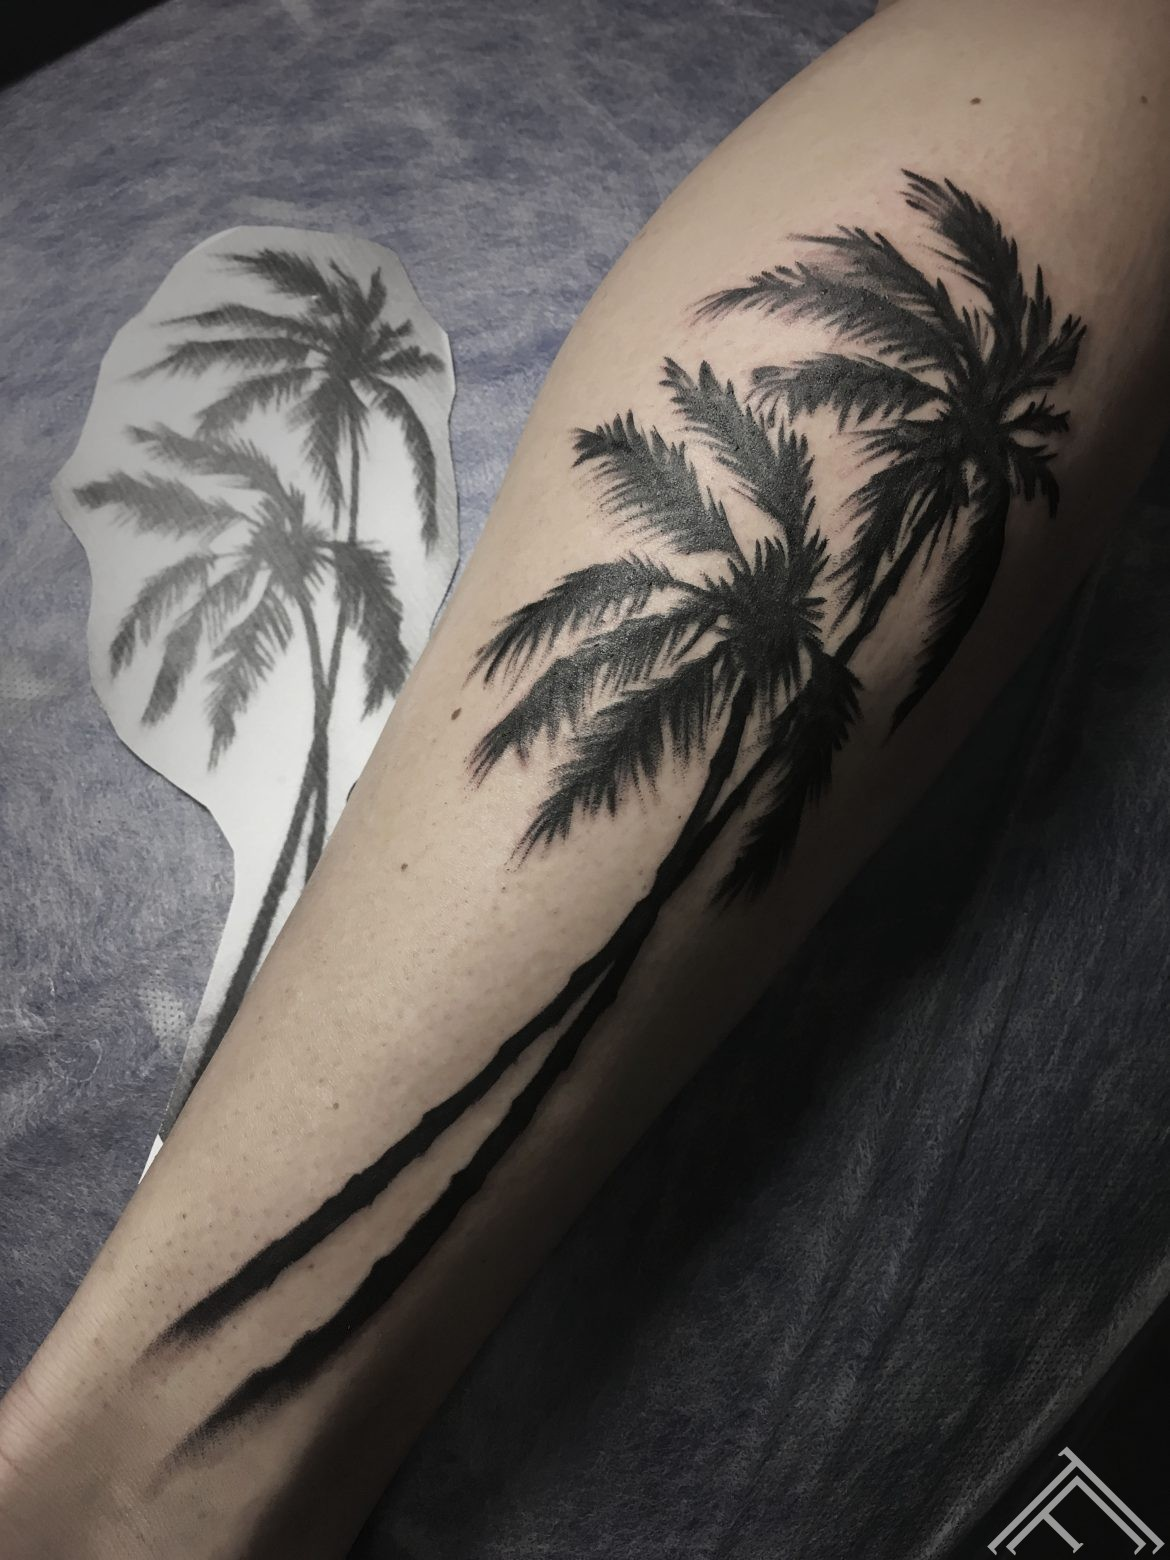 palms-palmas-razin-tattoo-tattoofrequency